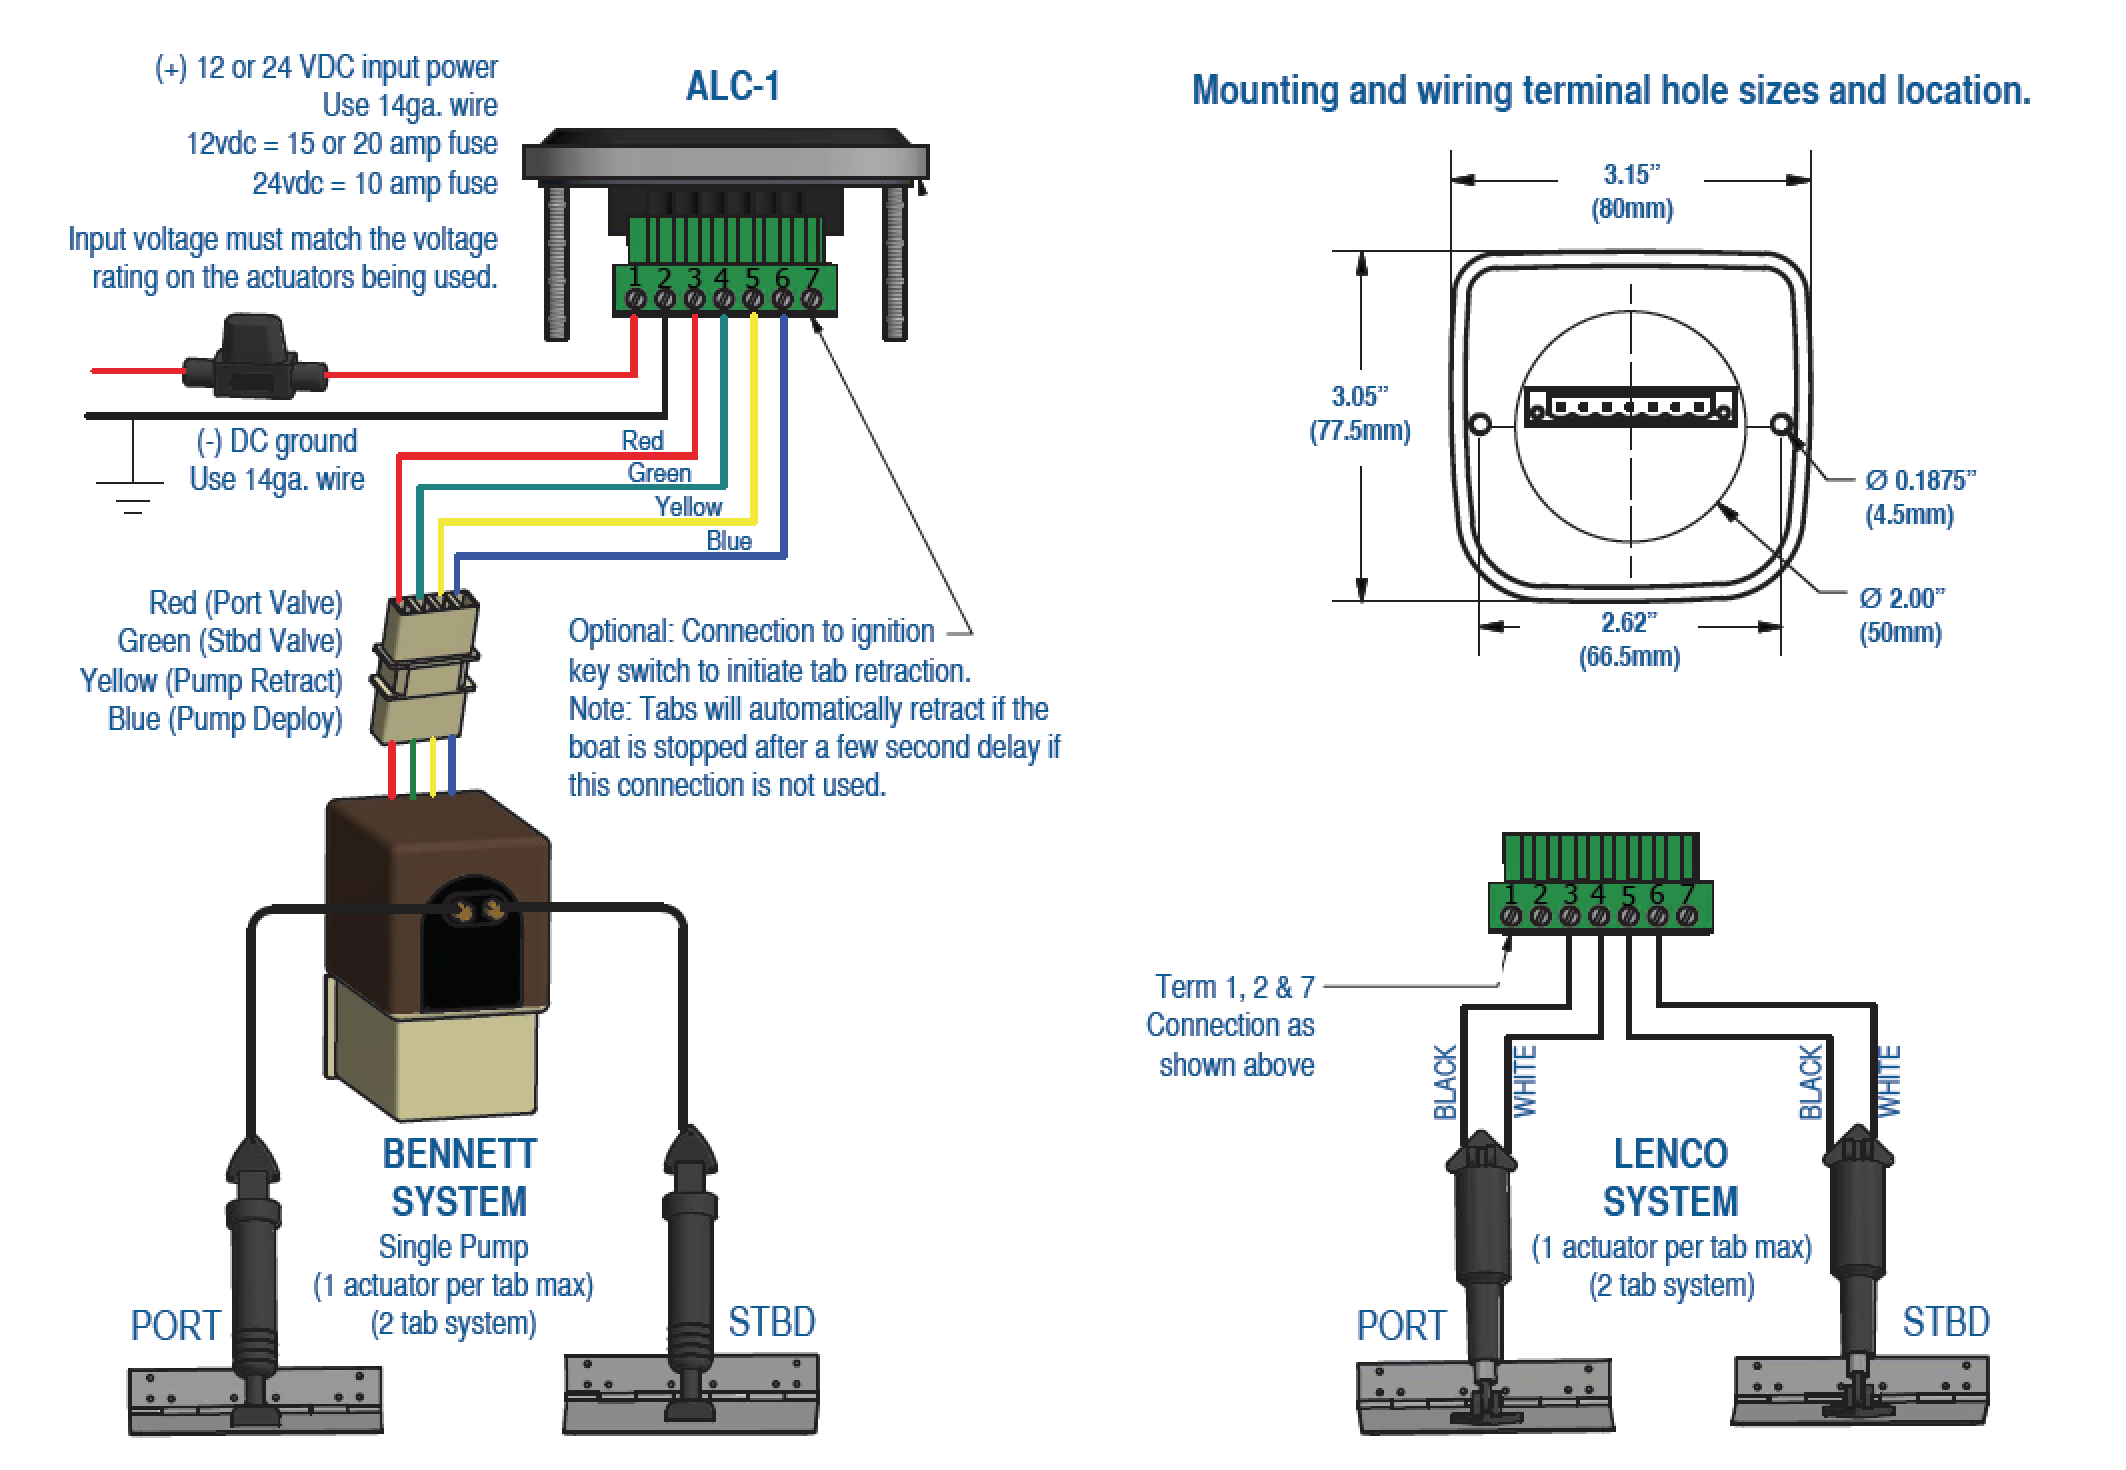 alc bennet lenco systems automatic level control for lenco and bennett products GMC Truck Wiring Diagrams at eliteediting.co